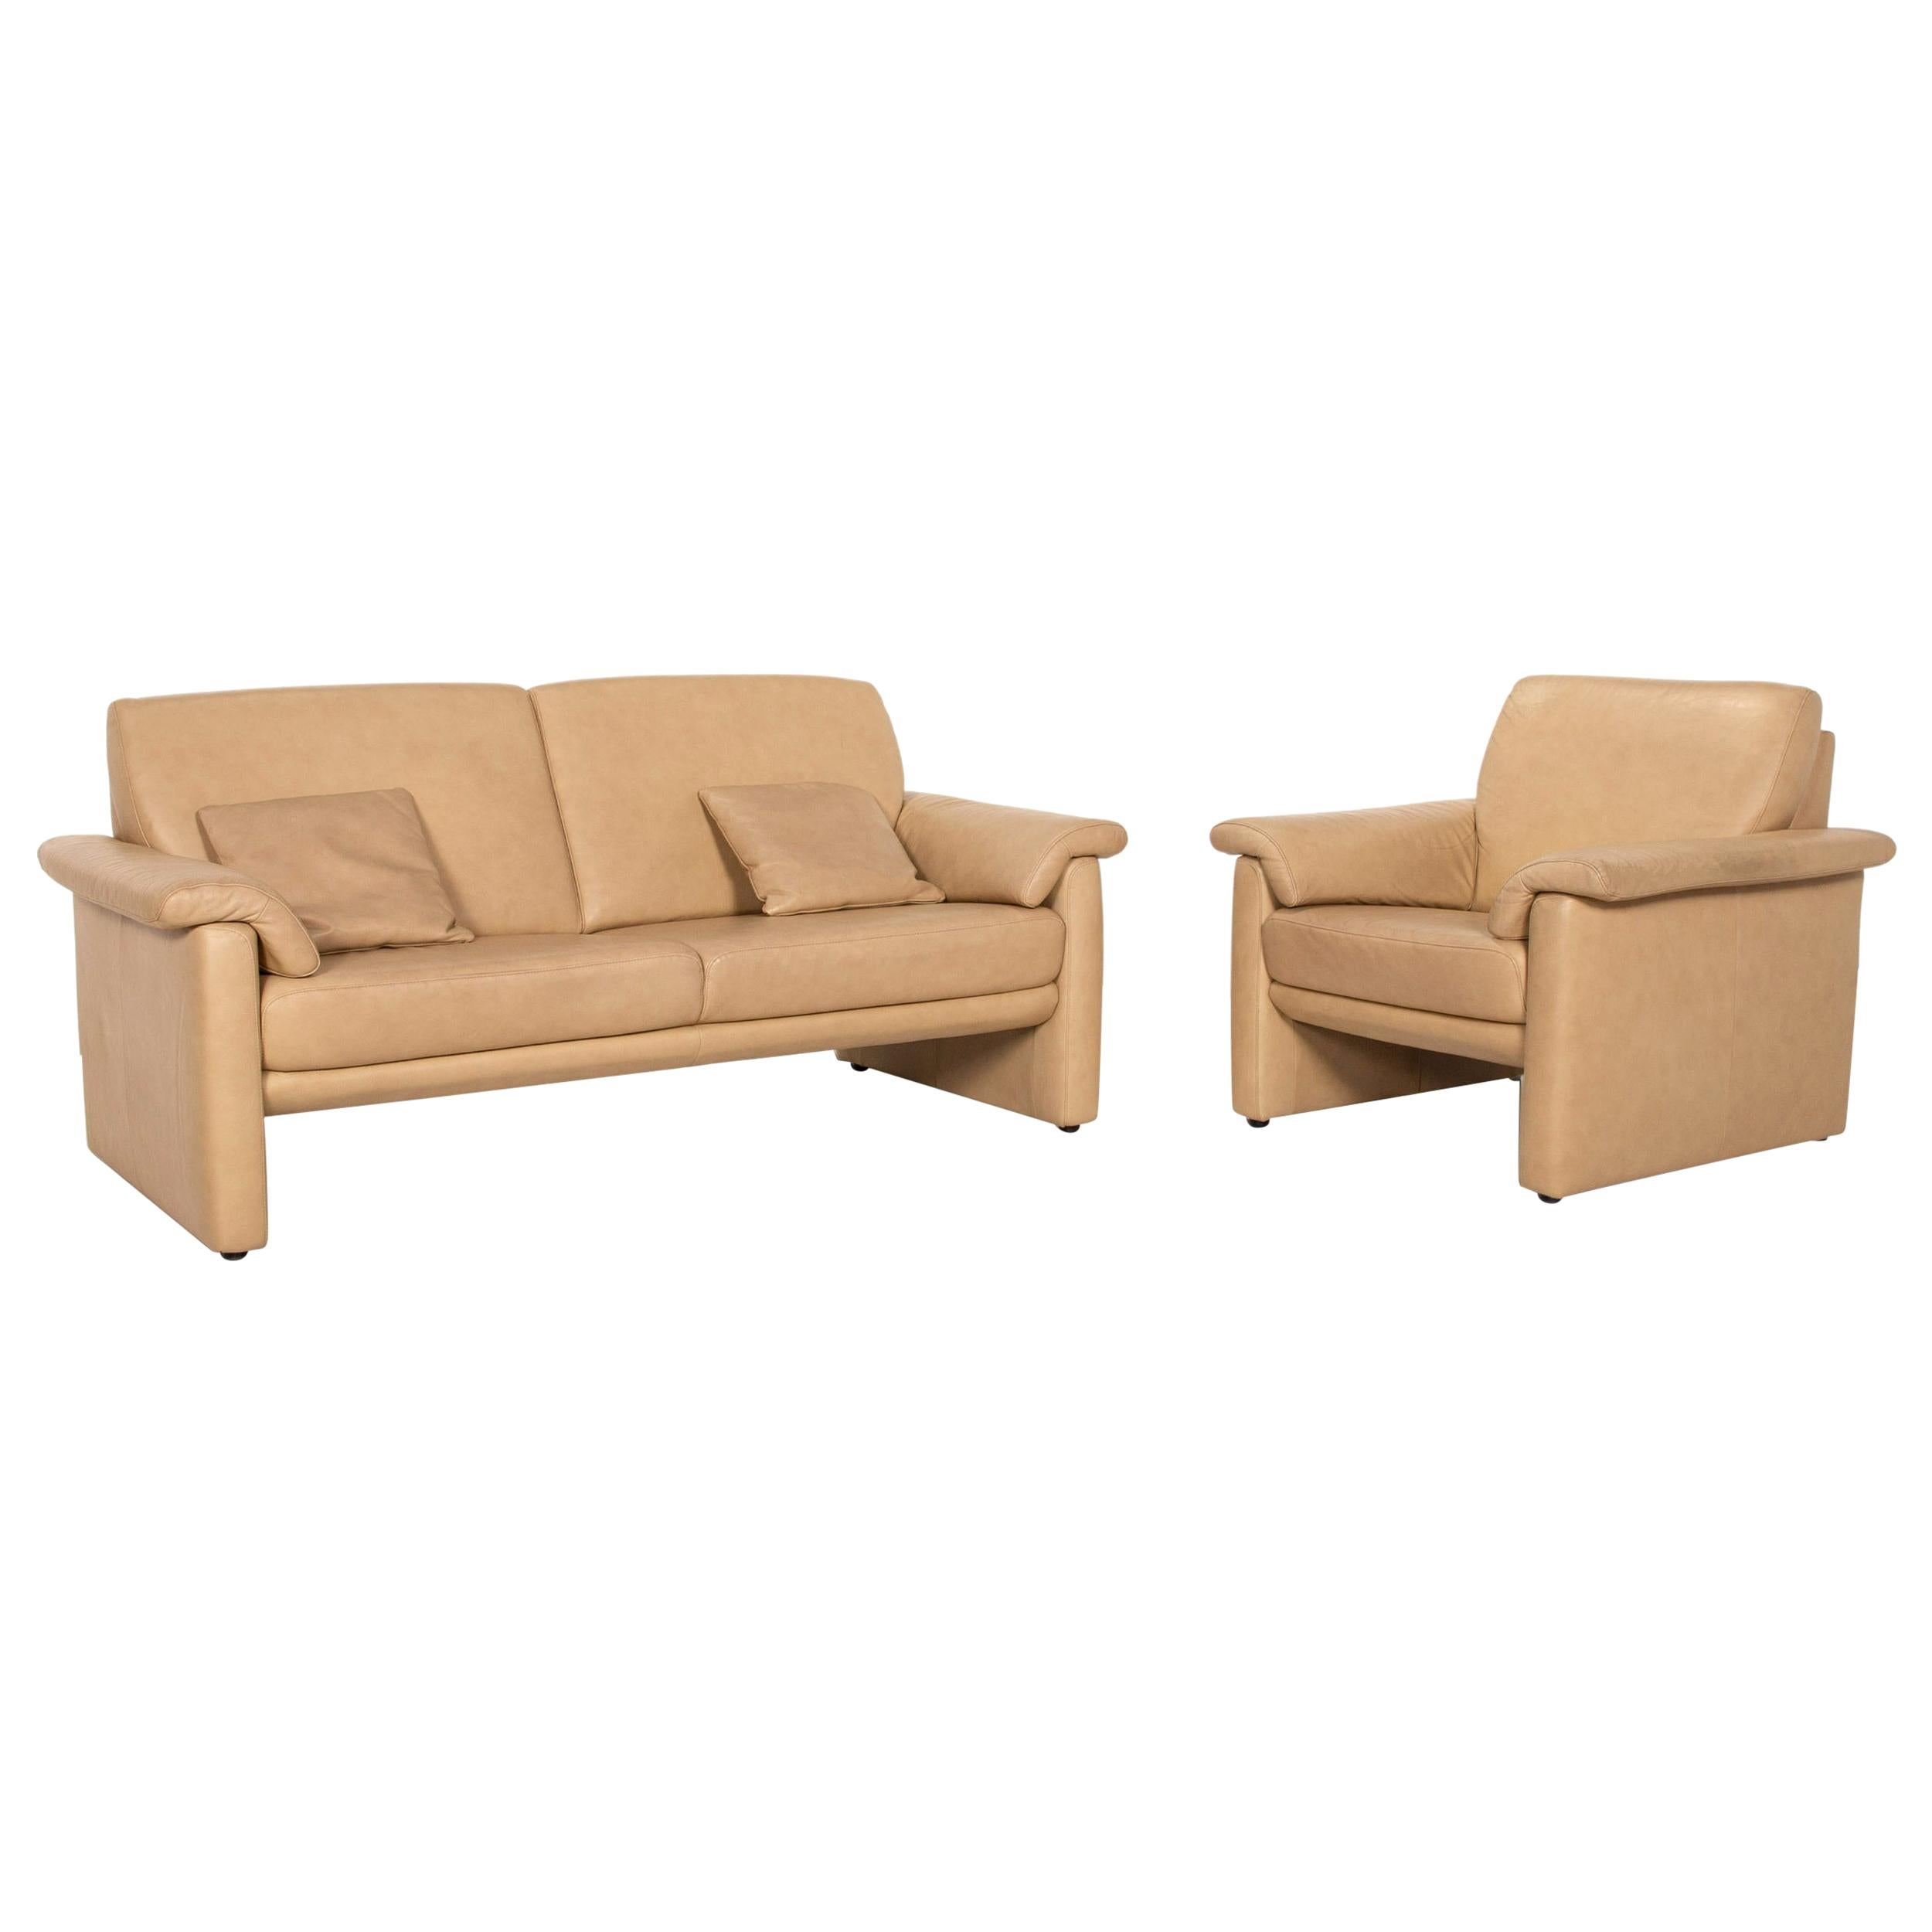 Willi Schillig Lucca Leather Sofa Set Beige 1x Two-Seater 1x Armchair